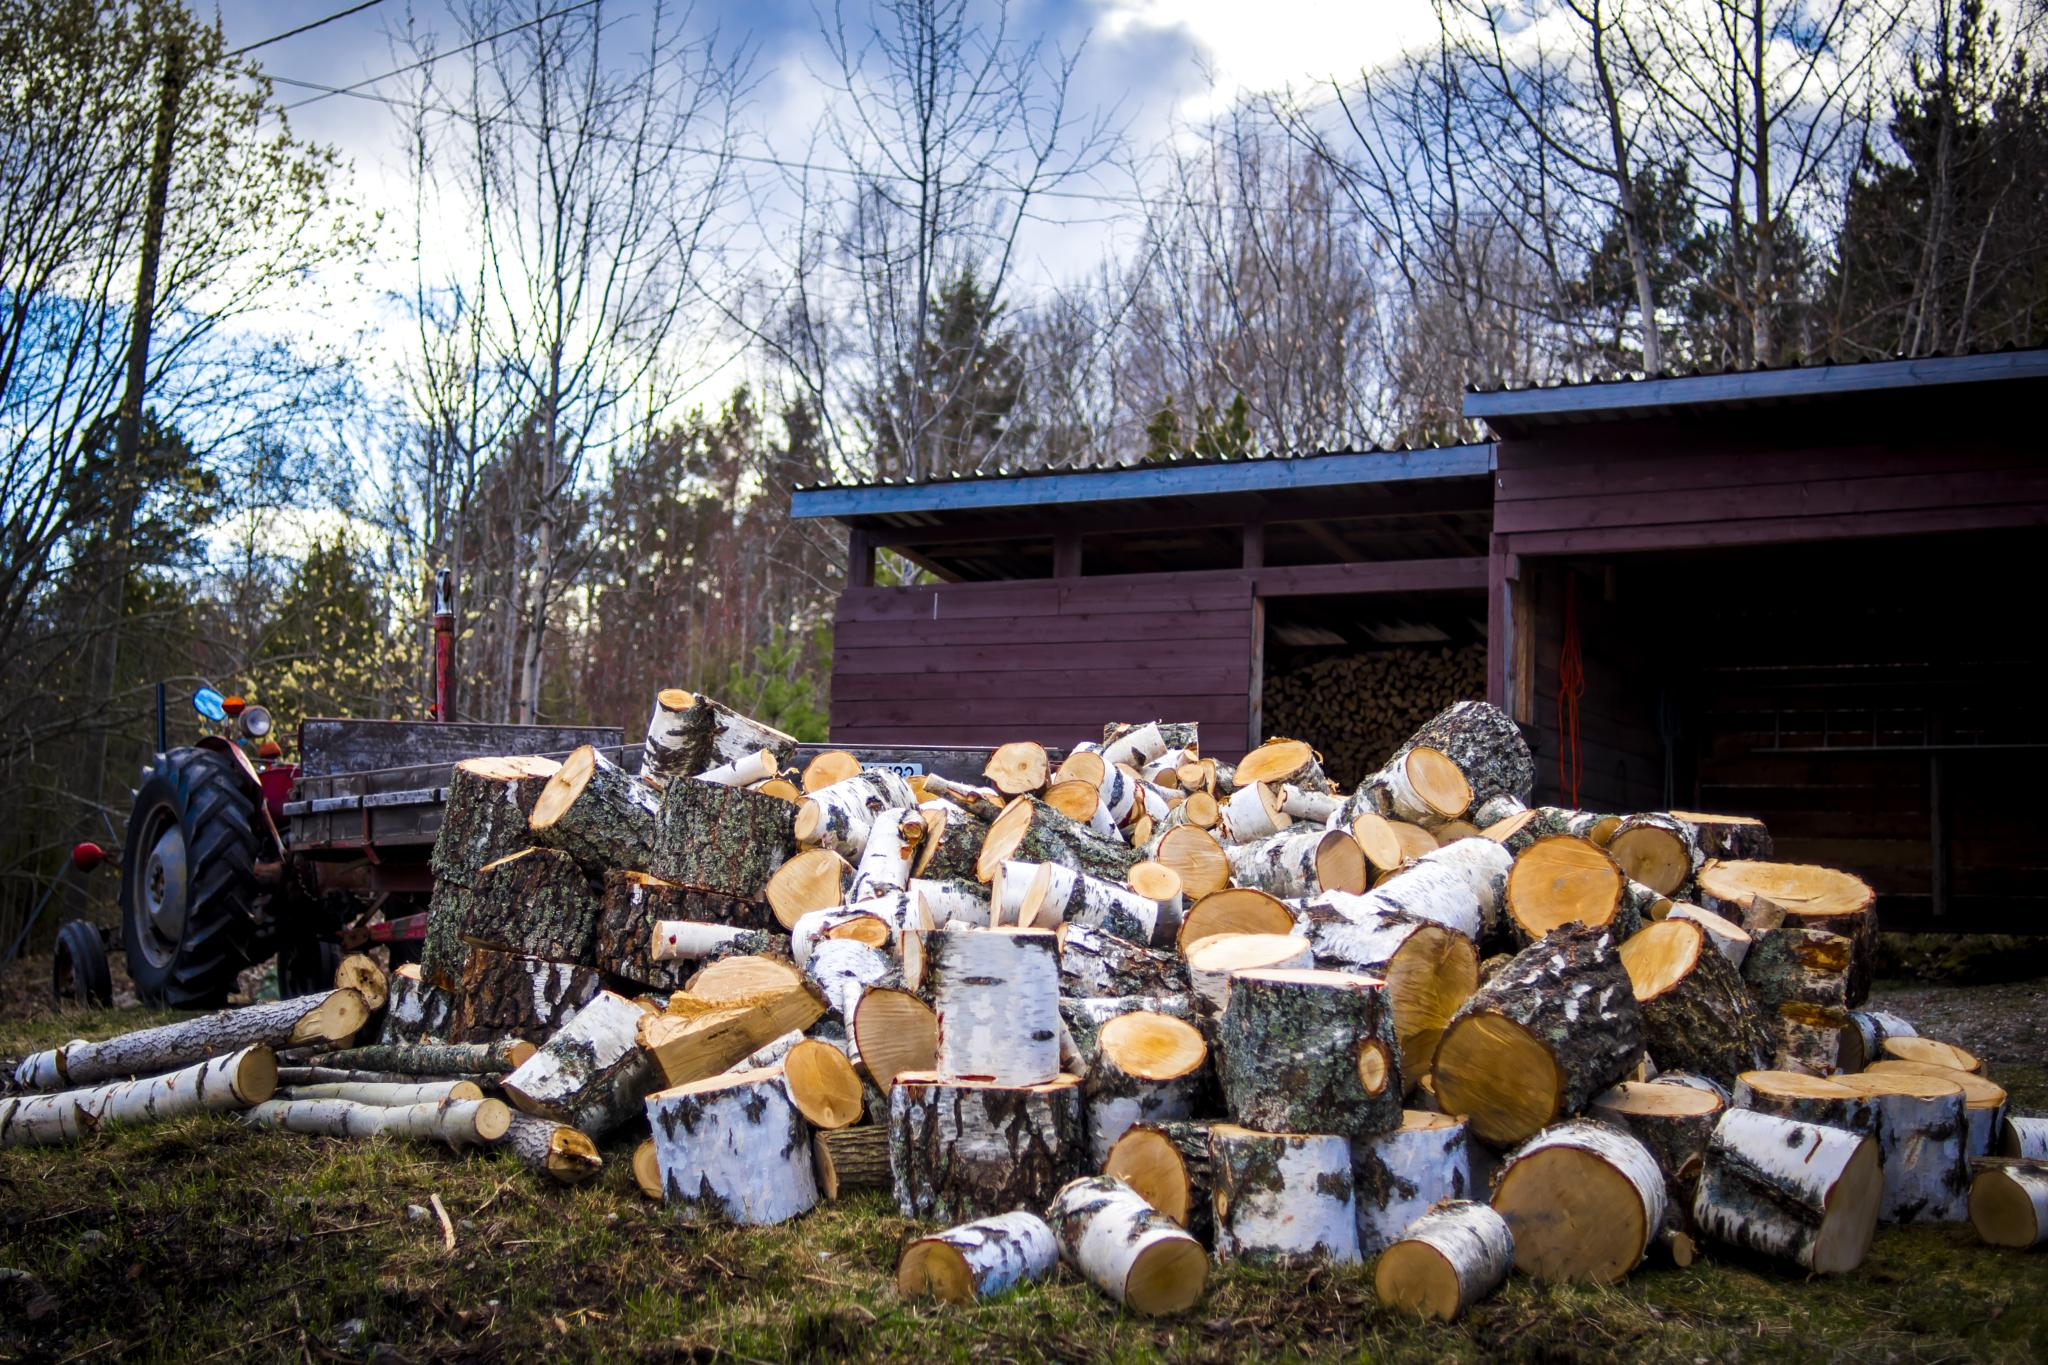 Finding peace in Wood by Ole Morten Eyra